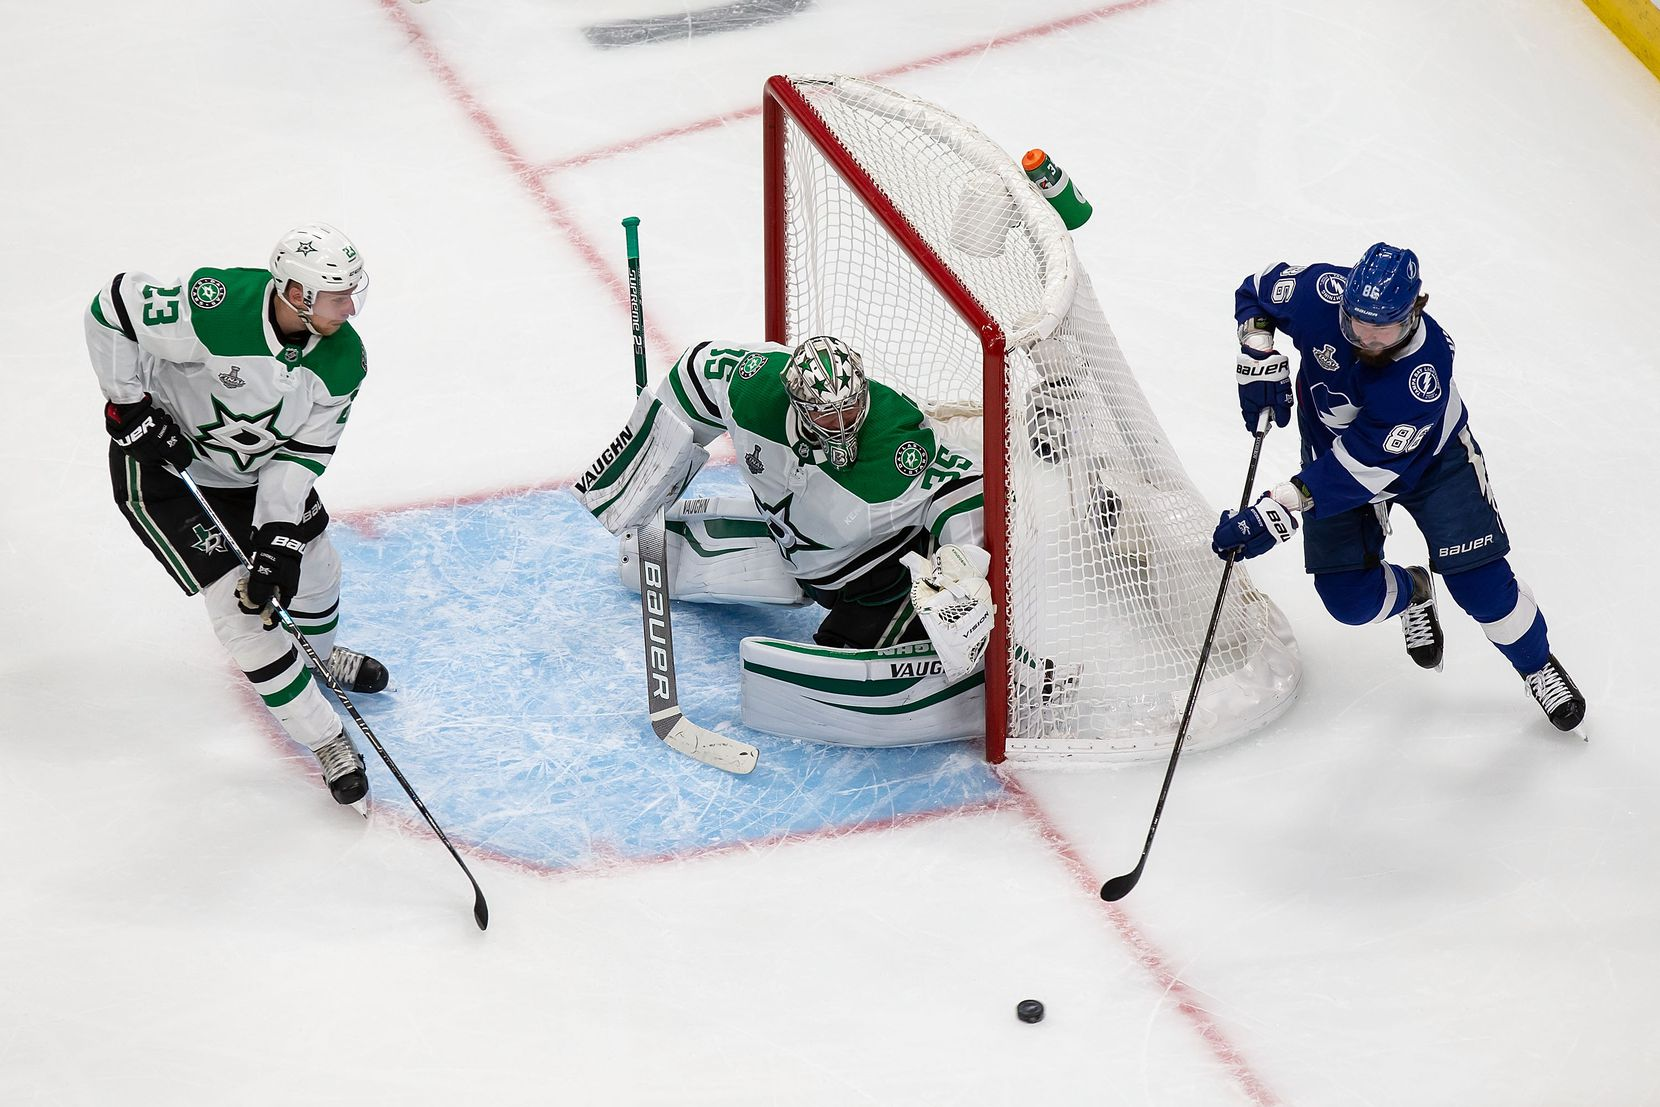 Esa Lindell (23) and goaltender Anton Khudobin (35) of the Dallas Stars defend against Nikita Kucherov (86) of the Tampa Bay Lightning during Game Two of the Stanley Cup Final at Rogers Place in Edmonton, Alberta, Canada on Monday, September 21, 2020. (Codie McLachlan/Special Contributor)